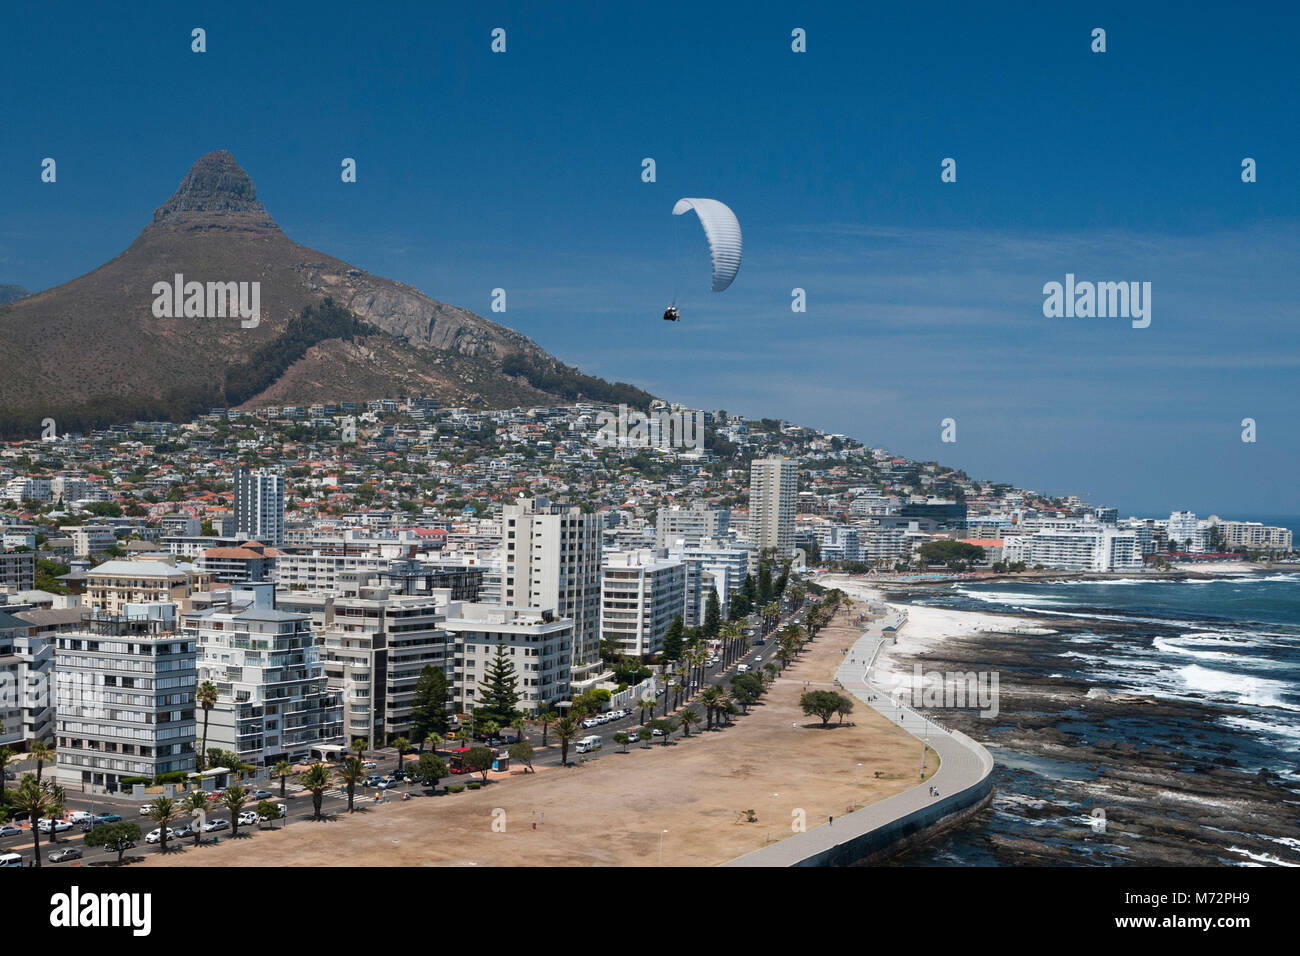 Tandem paraglider flying above Cape Town's Atlantic seaboard suburb of Sea Point with Lion's Head in the background. - Stock Image